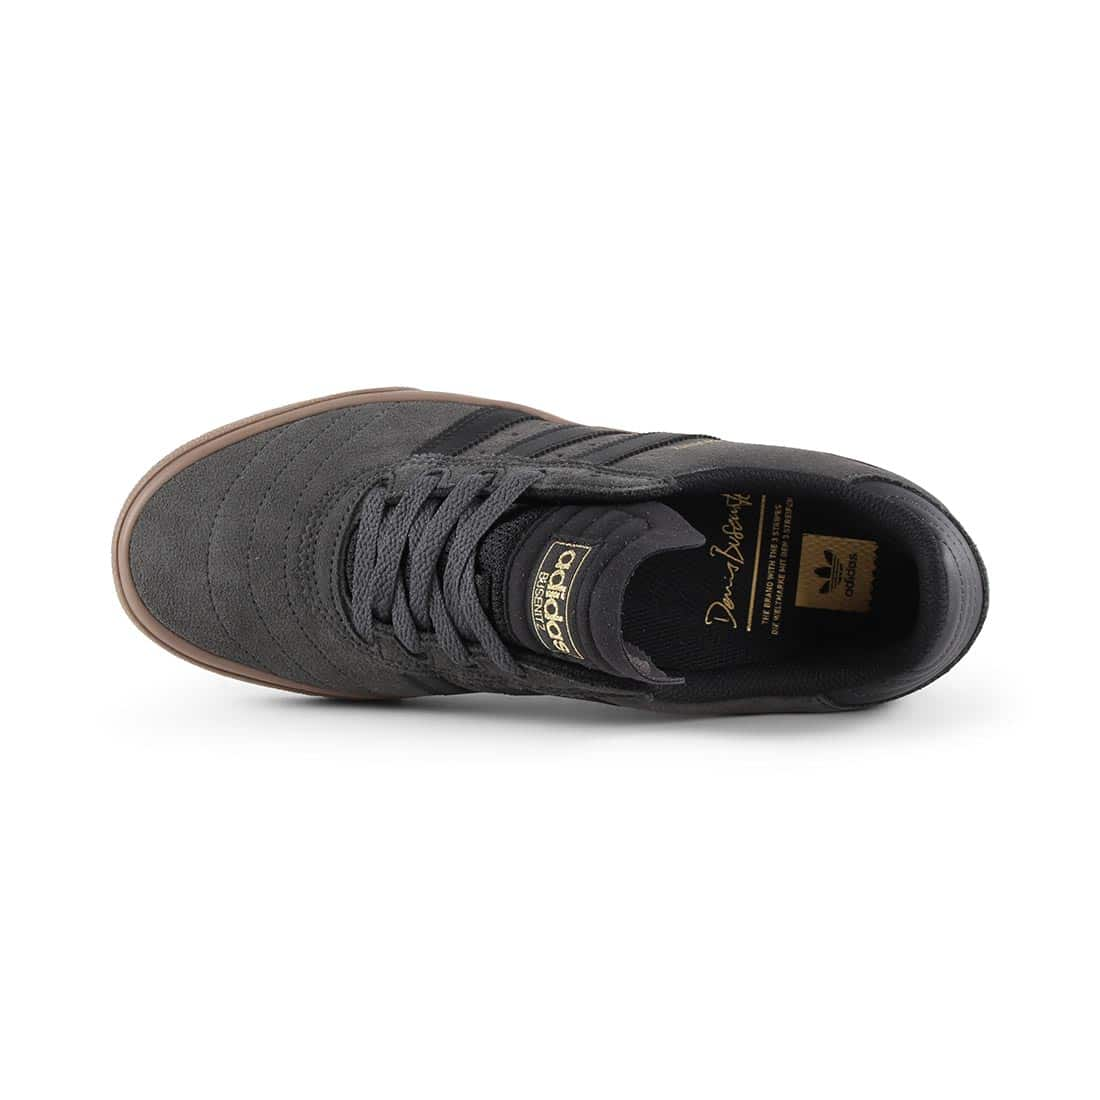 cheaper dc26c fc283 Adidas-Busenitz-Vulc-Shoes-DGH-Solid-Grey-Core-Black-Gum-06.jpg